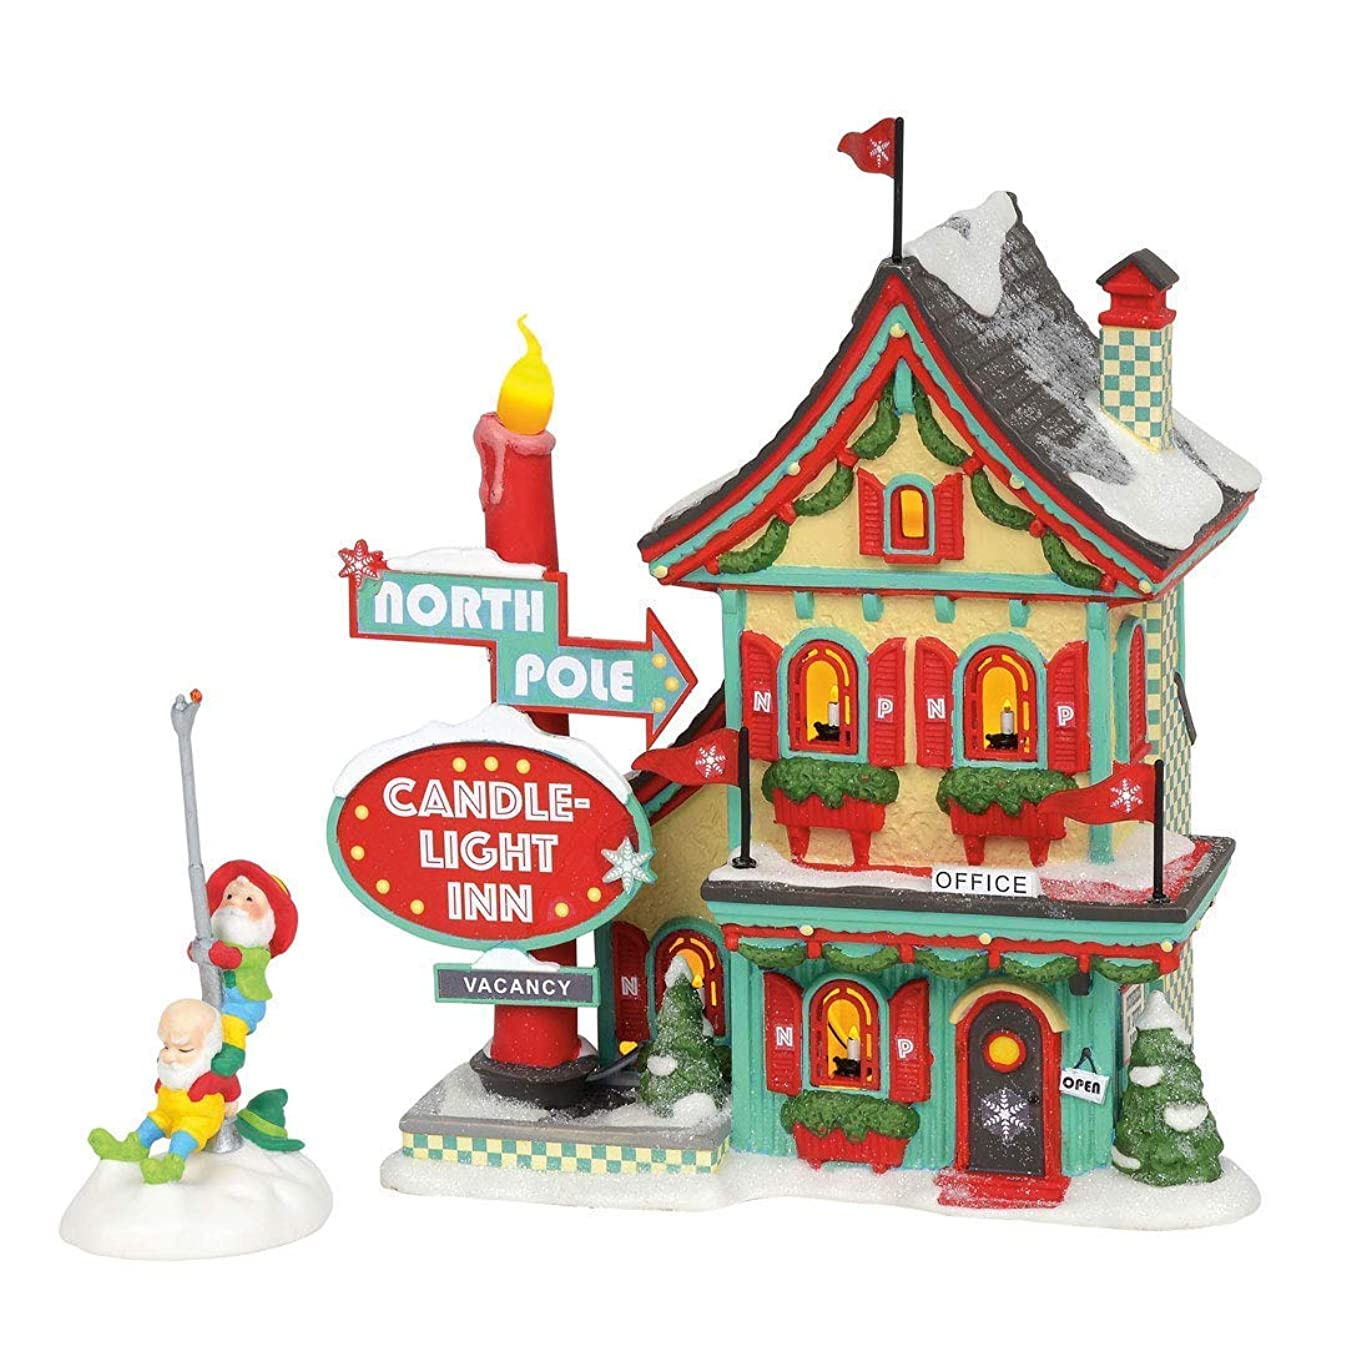 Department 56 North Pole Village Series Welcoming Christmas Candle-Light Inn Lit Building and Accessory, 7.01